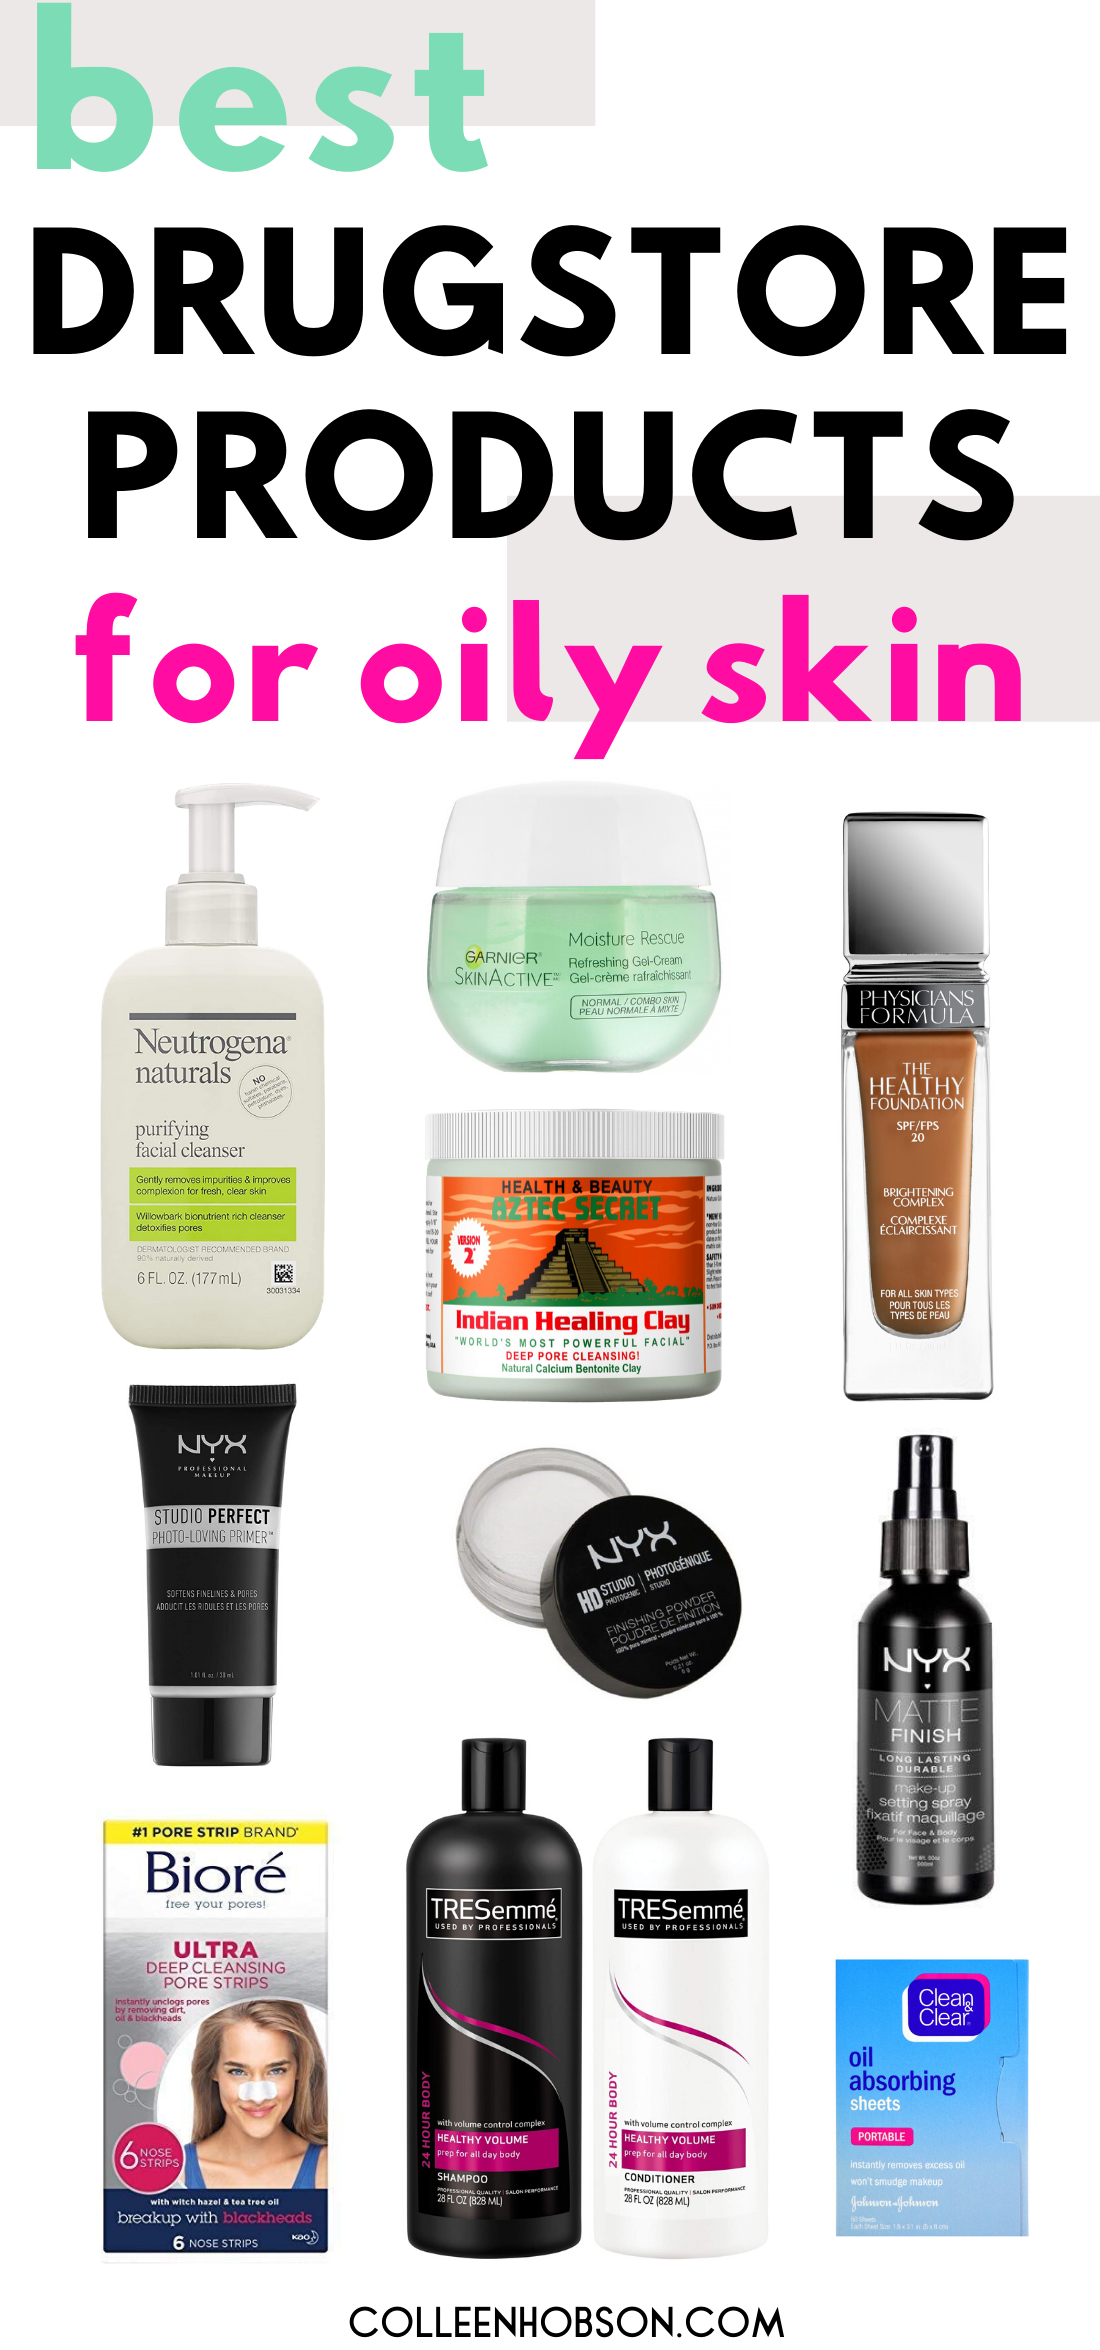 The Best Drugstore Beauty Products For Oily Skin In 2020 Beauty Products For Oily Skin Control Oily Skin Beauty Products Drugstore